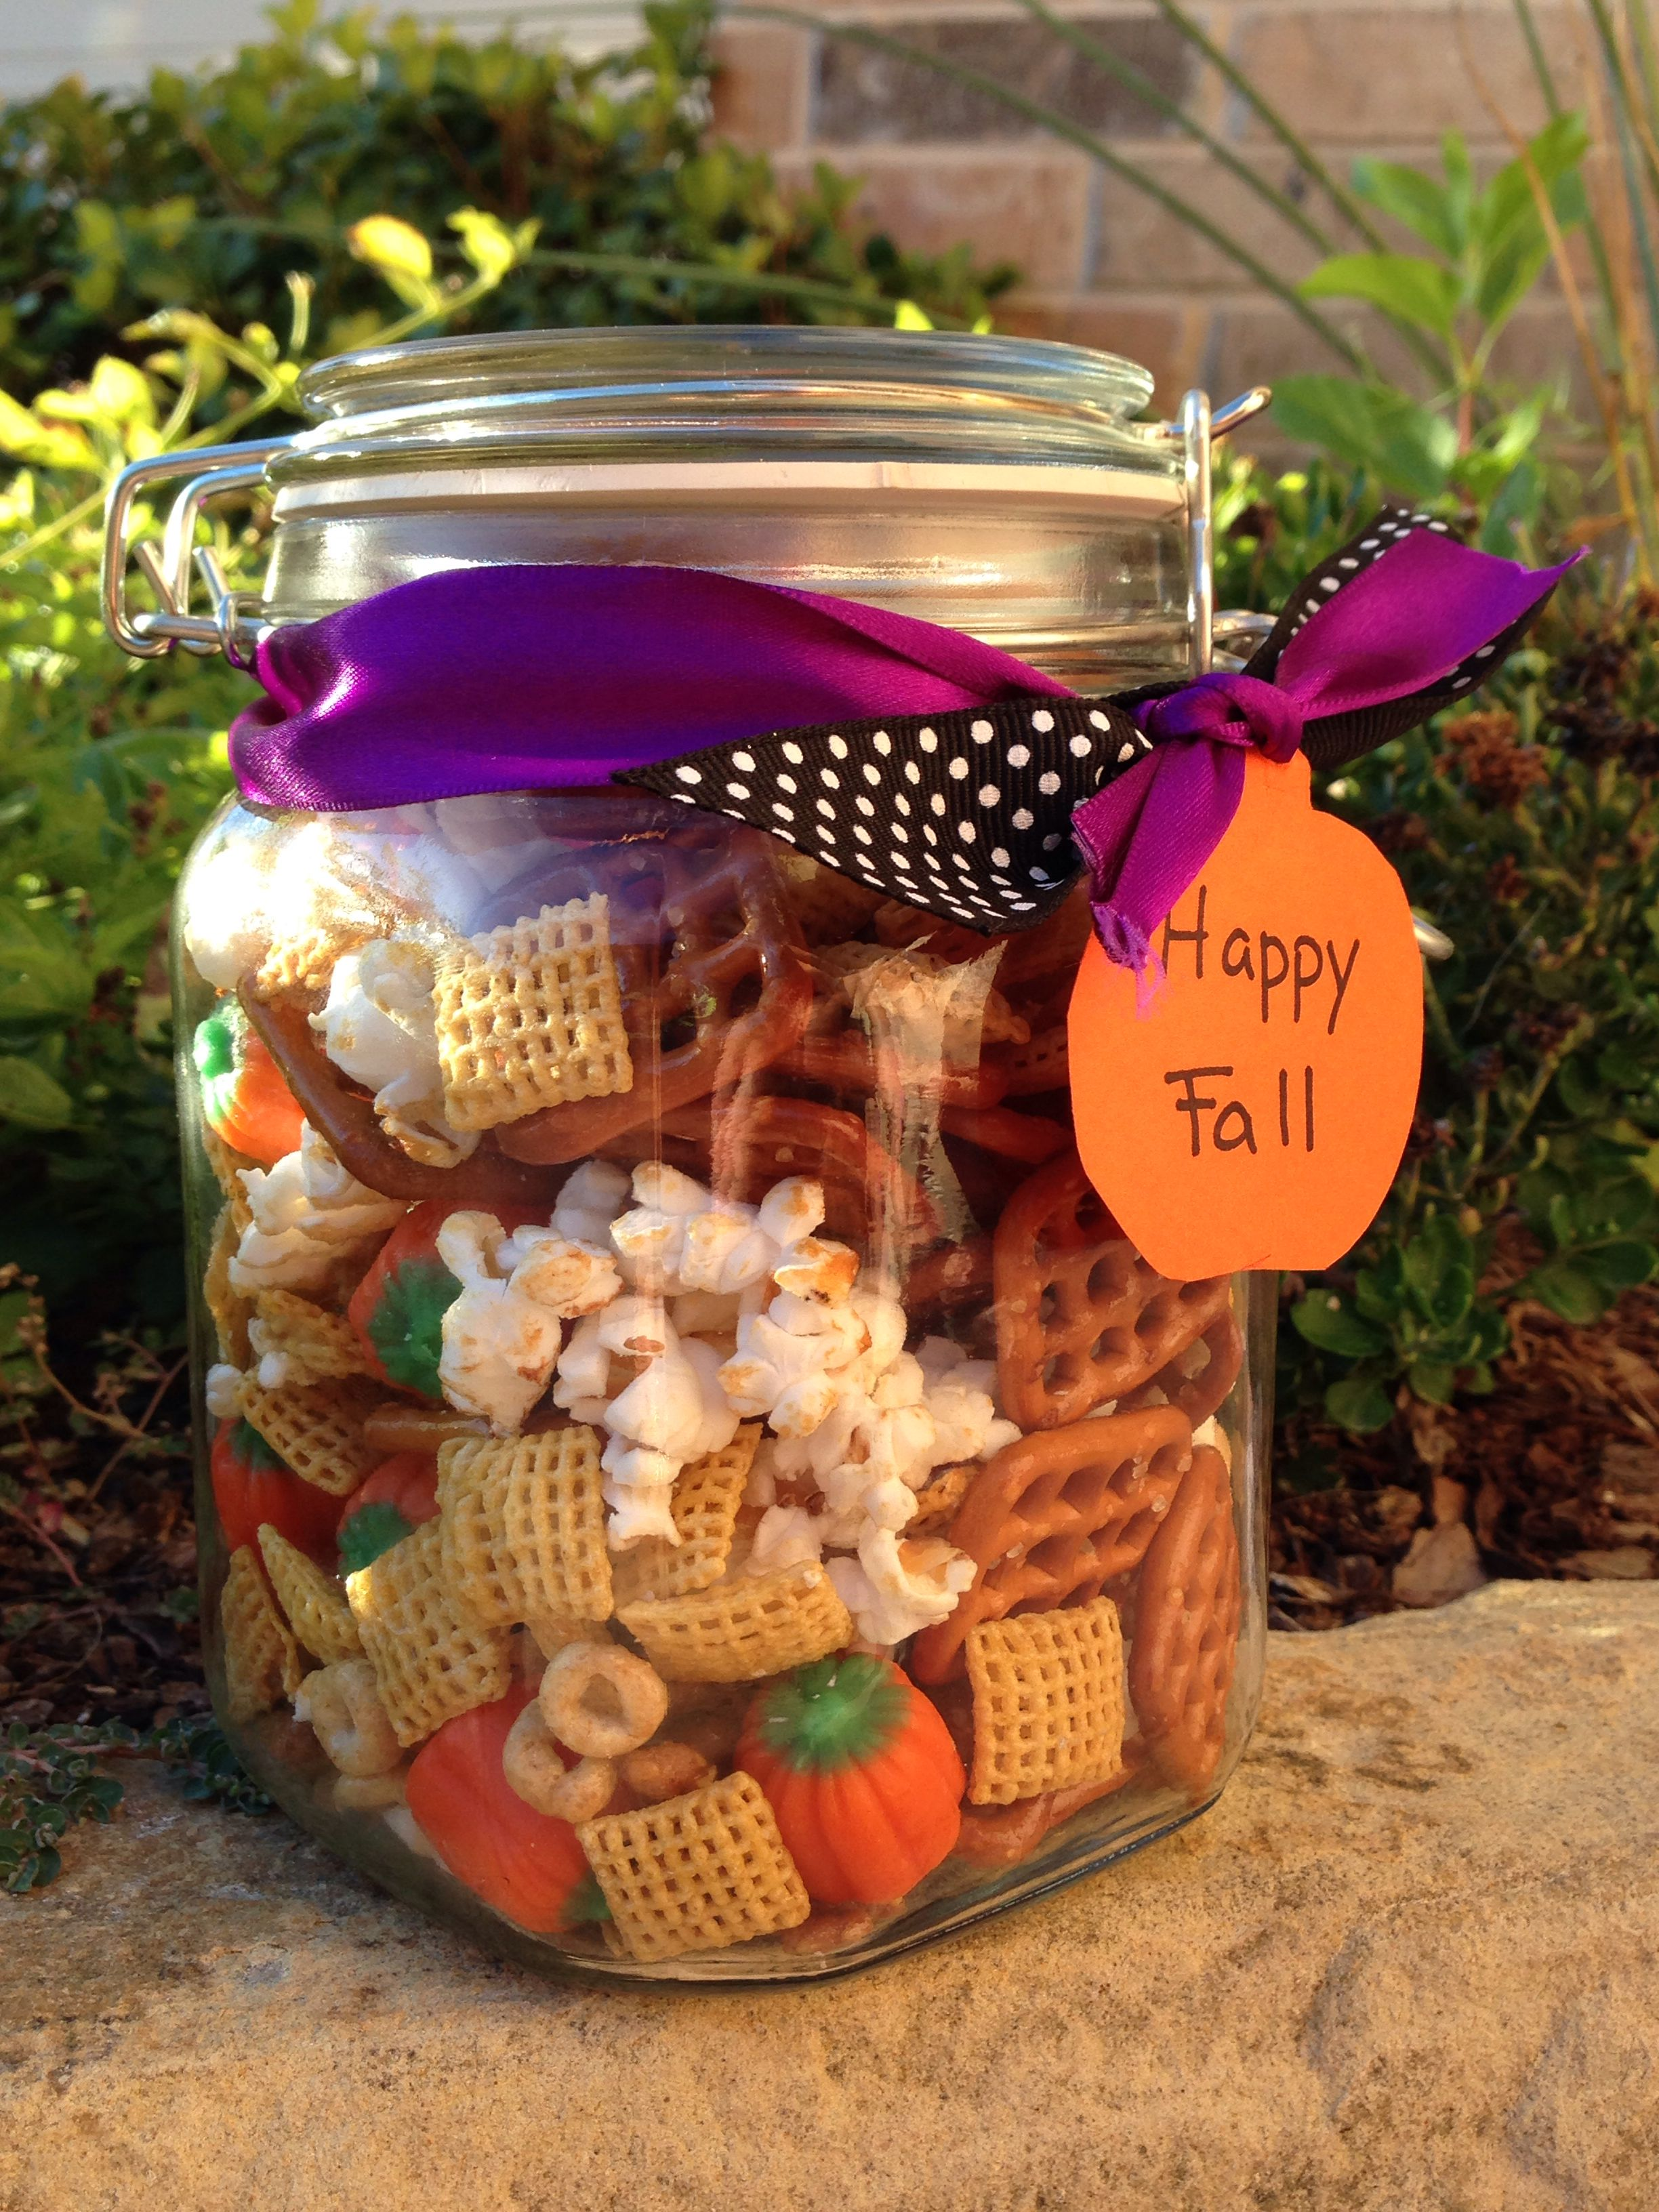 Pin by Kim Weatherholt on homemade gift ideas | Pinterest